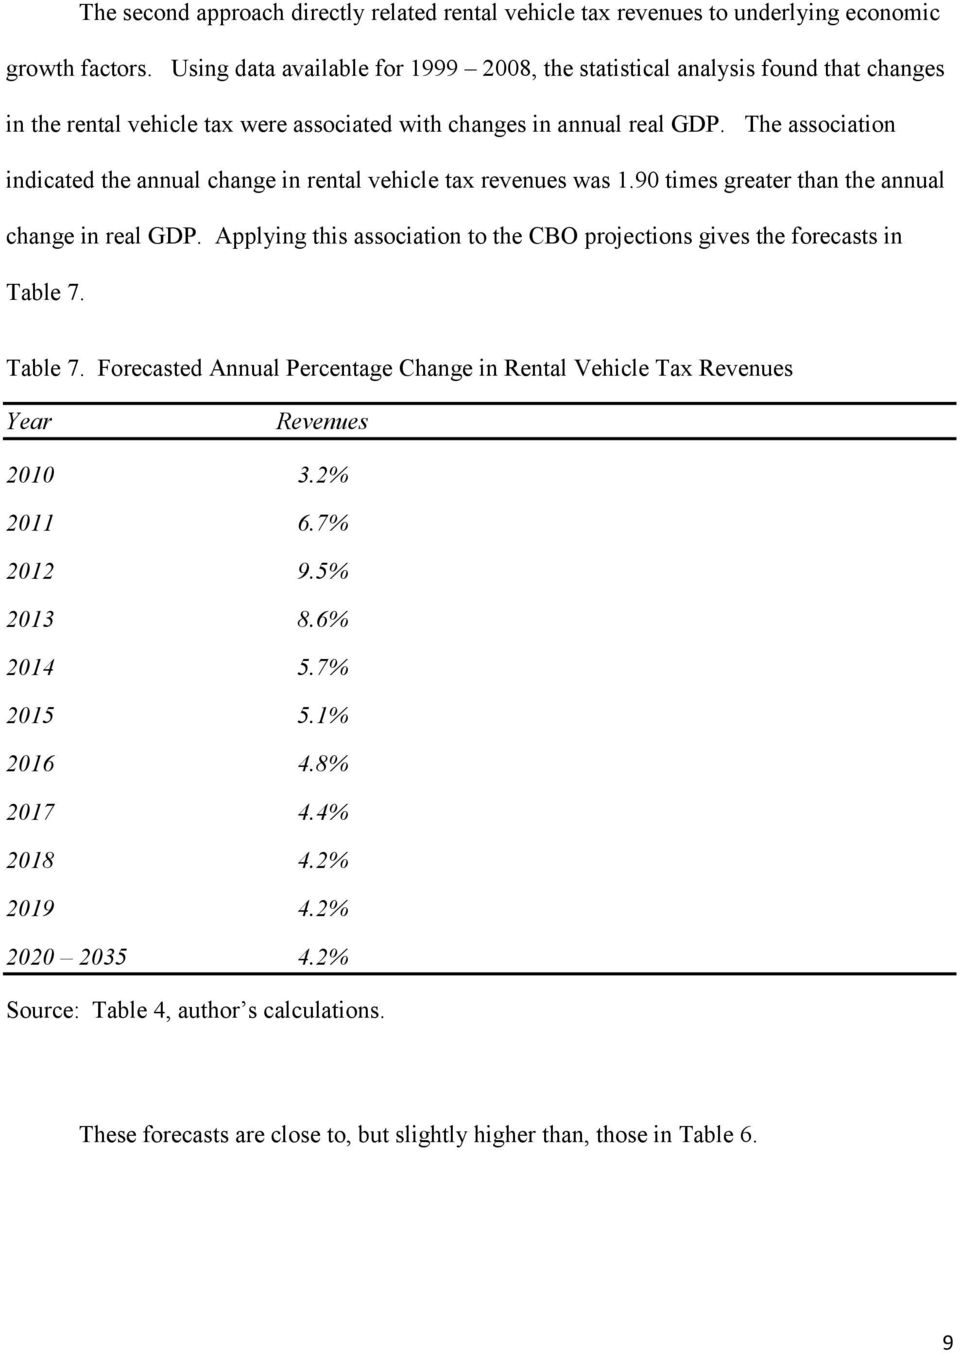 The association indicated the annual change in rental vehicle tax revenues was 1.90 times greater than the annual change in real GDP.